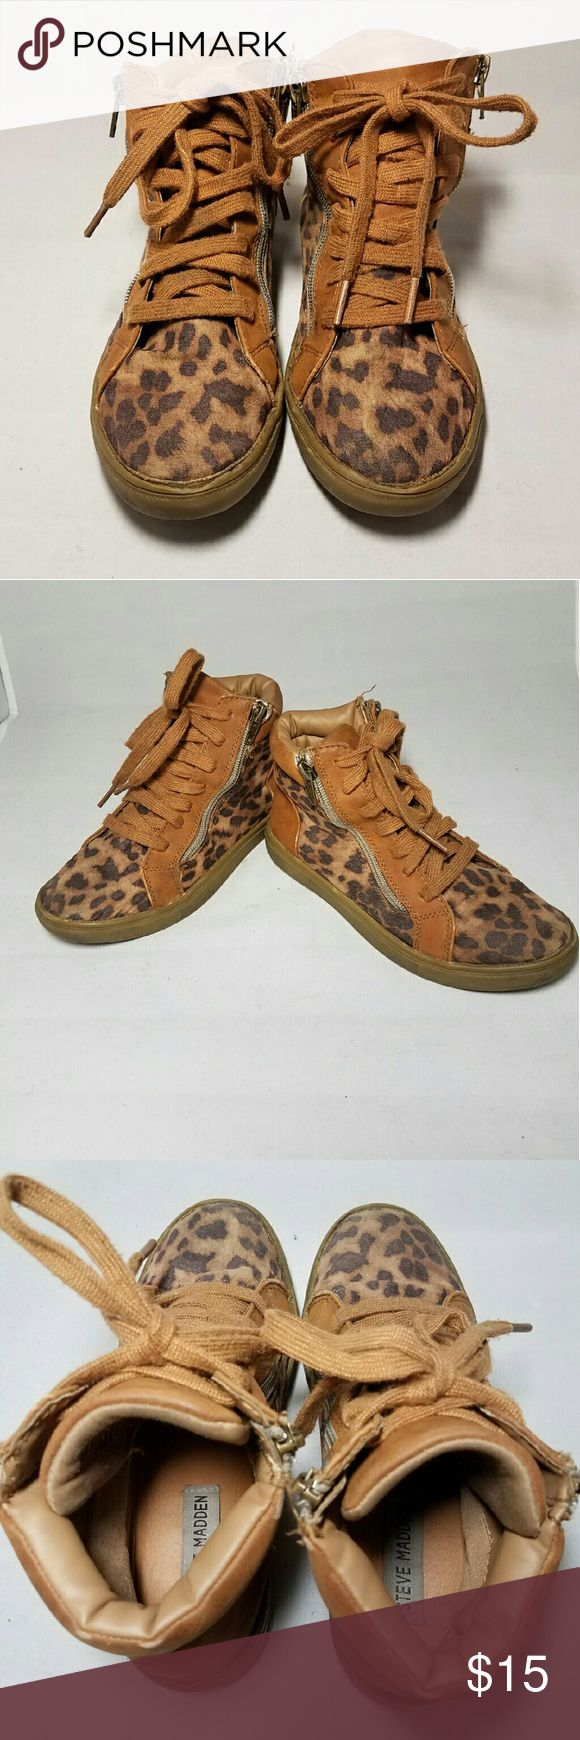 STEVE MADDEN CHEETAH PRINT SIZE 3M HIGH TOP SHOES STEVE MADDEN CHEETAH PRINT SIZE 3M HIGH TOP SHOES  *SIZE: 3M *Lace front *Double zipper: Inner zipper zips. Outer zipper is decorative  *Normal wear and tear throughout (see pics) *Some wear where sides meet fabric (see pics) *Smoke-free home  *Fast shipping  * Feelfree to ask questions AND  * MAKE OFFERS!  Thank you and Happy New Year 2017!  xoxo @RandomFindings Steve Madden Shoes